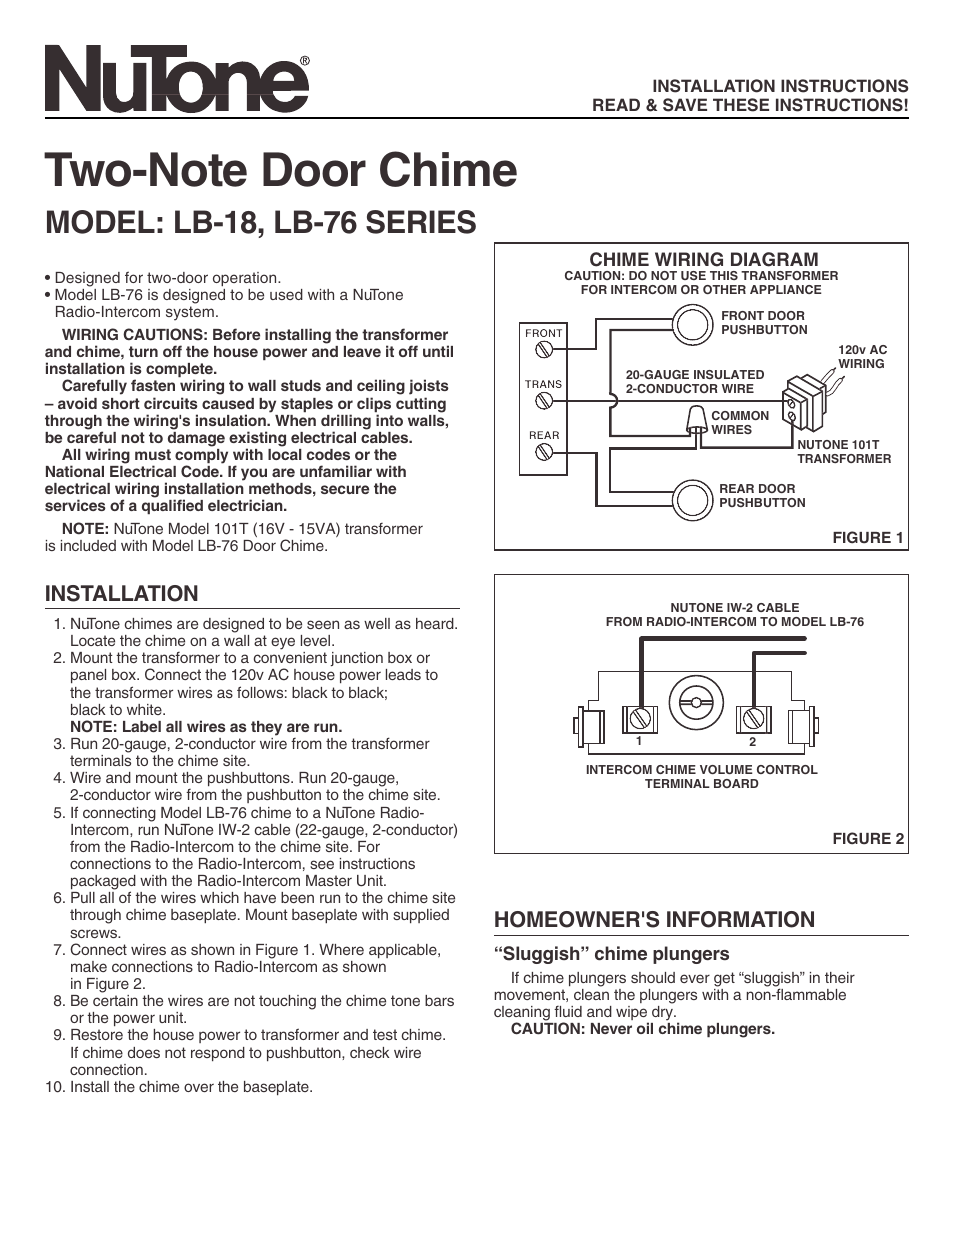 nutone two note door chime lb 76 page1 nutone doorbell wiring diagram & rittenhouse po 2 door chime mechanism nutone scovill intercom wiring diagram at readyjetset.co